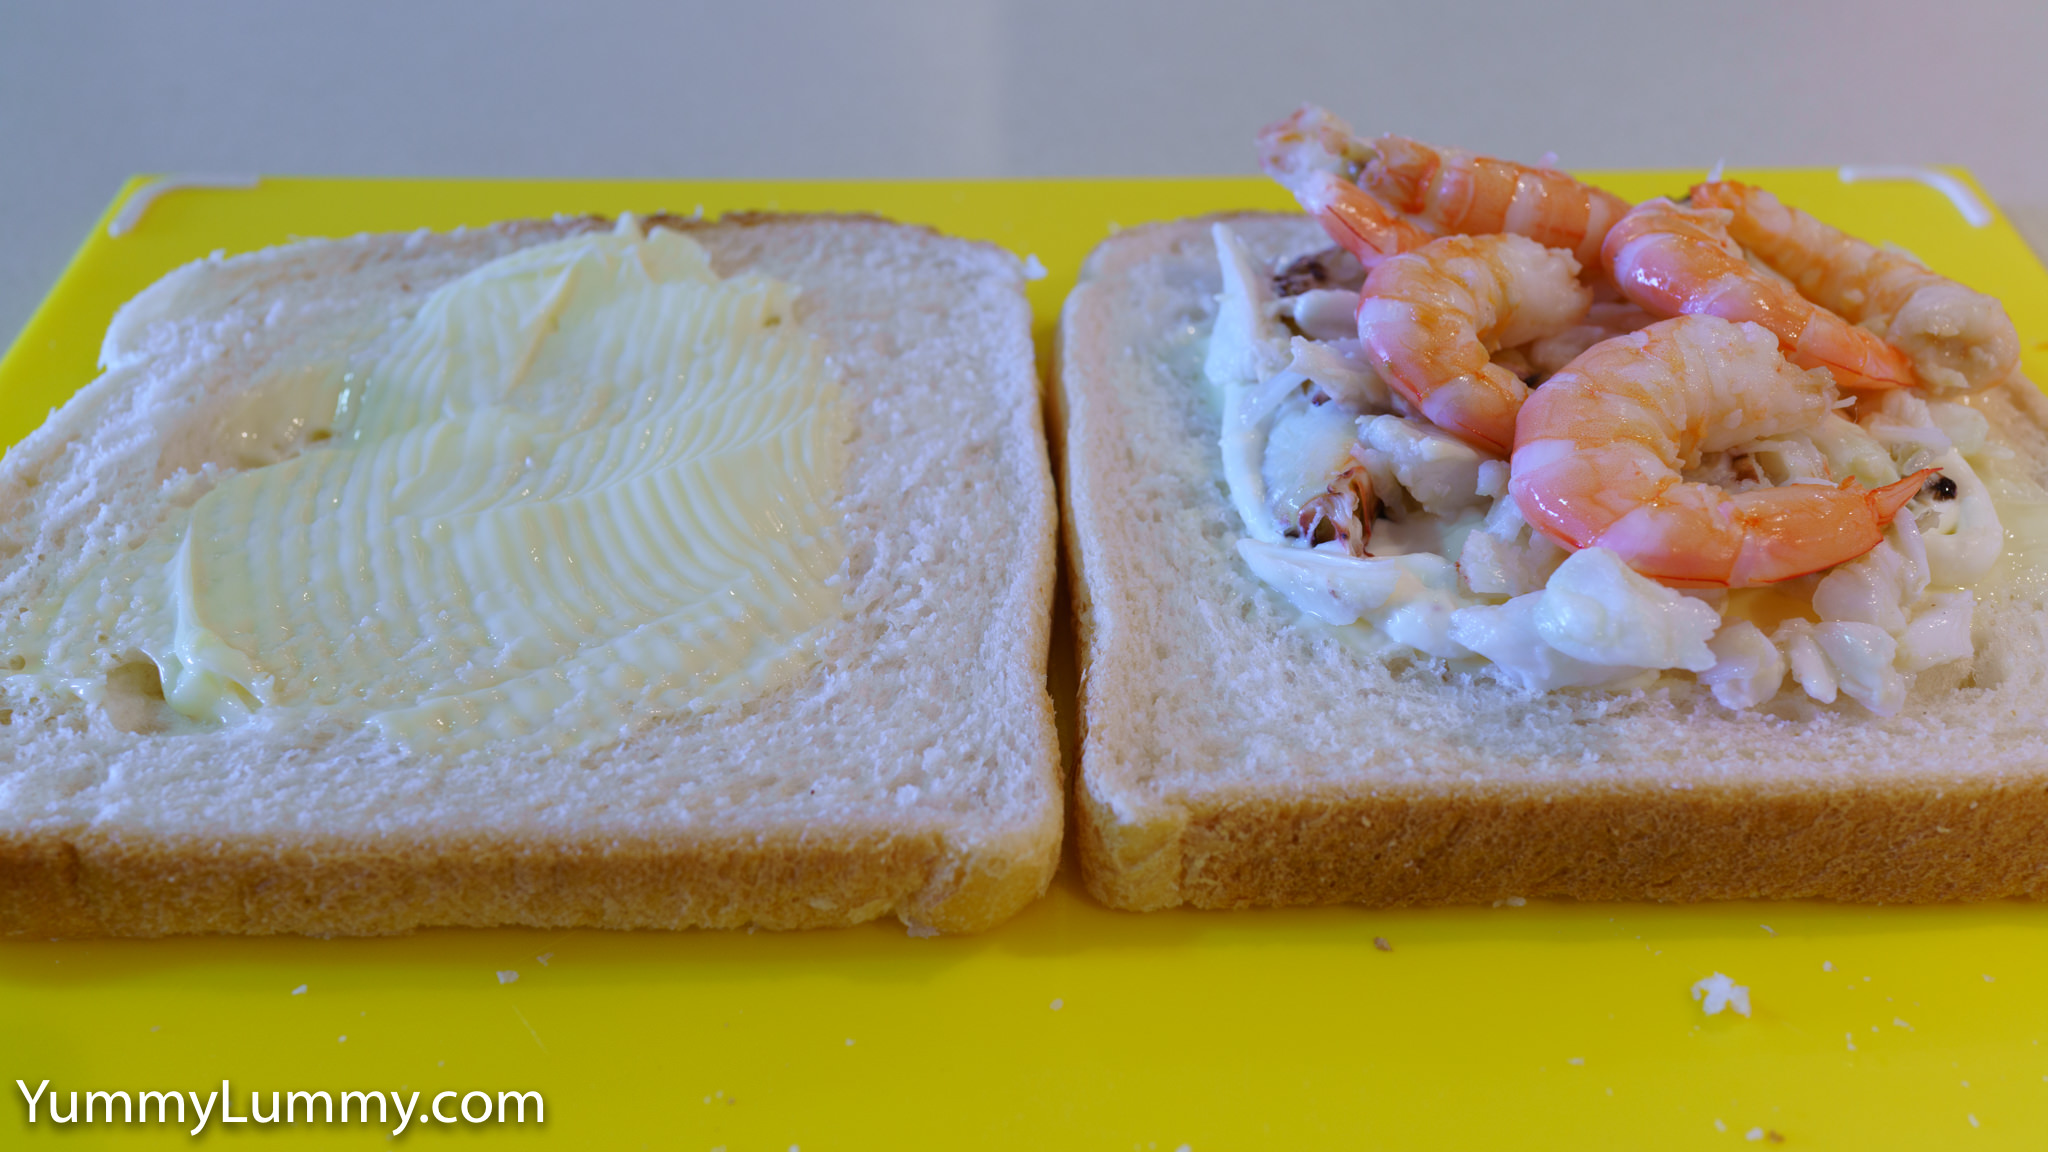 Buttered Tip Top™ White sandwich bread with aioli, crab meat, and prawns. Gary Lum.